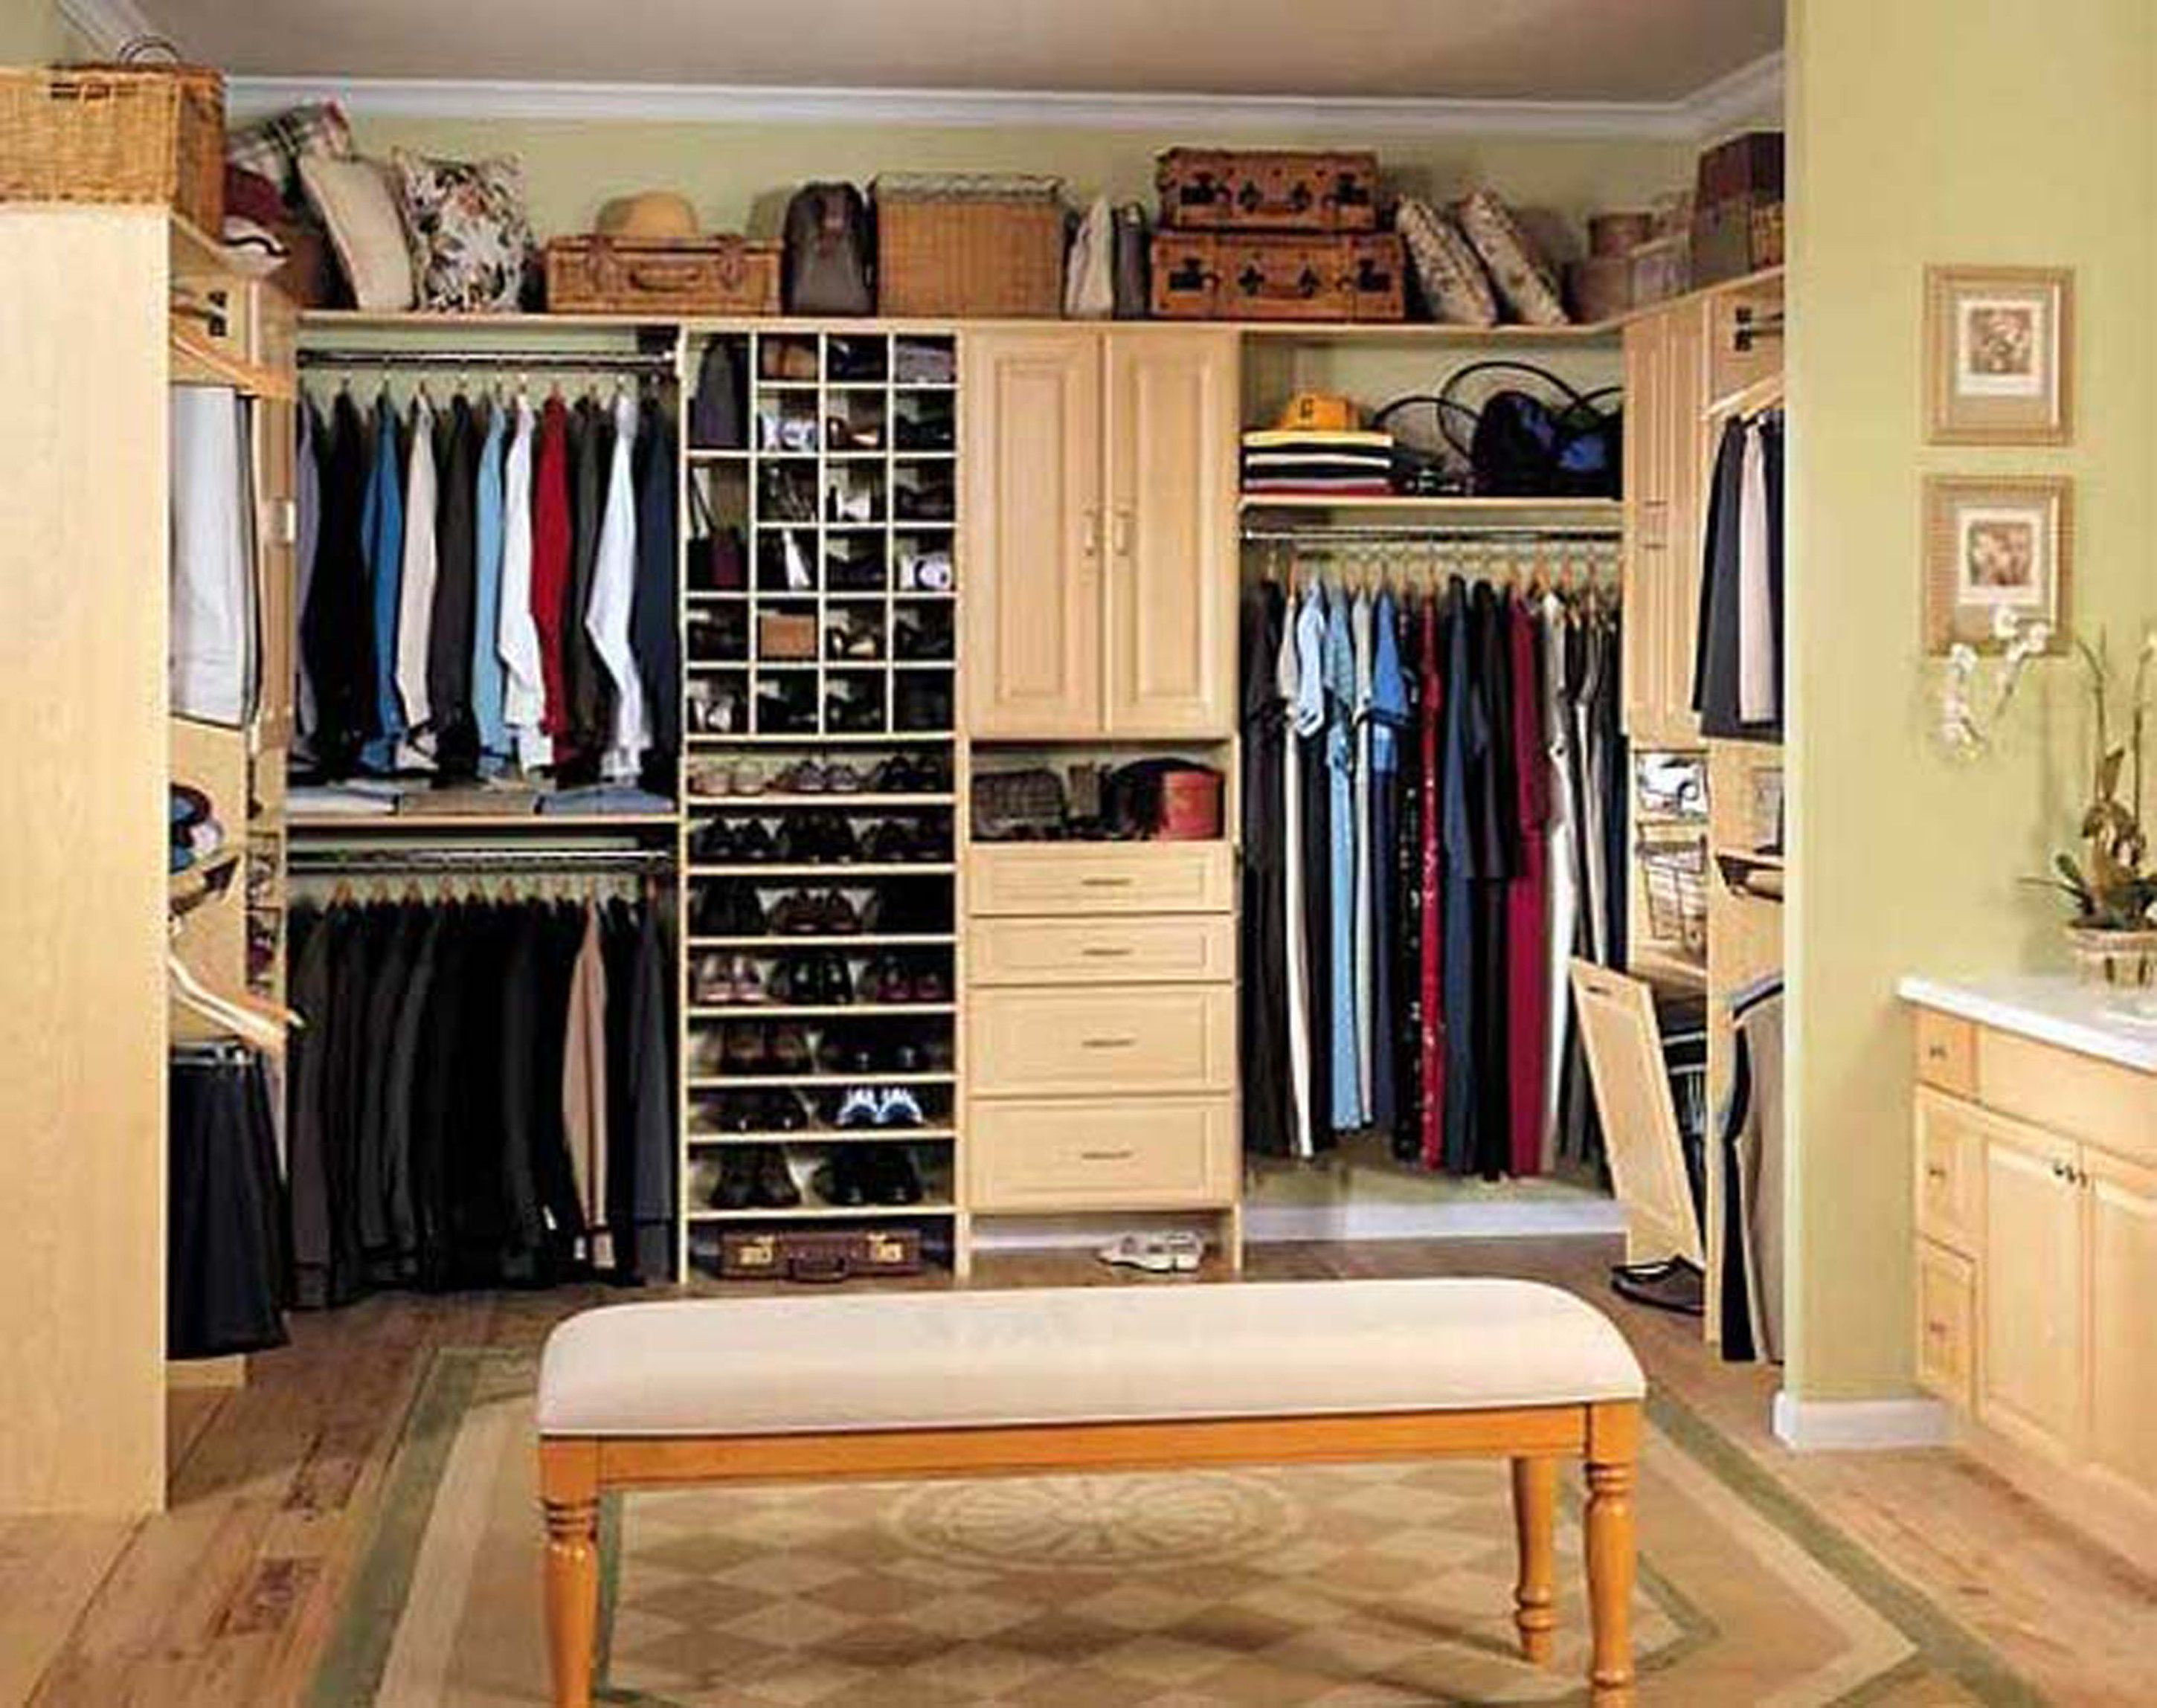 Place Long Bench in Wide Walk In Closed using Tidy Closet Storage Ideas with Shoes Shelves and Clothes Hangers